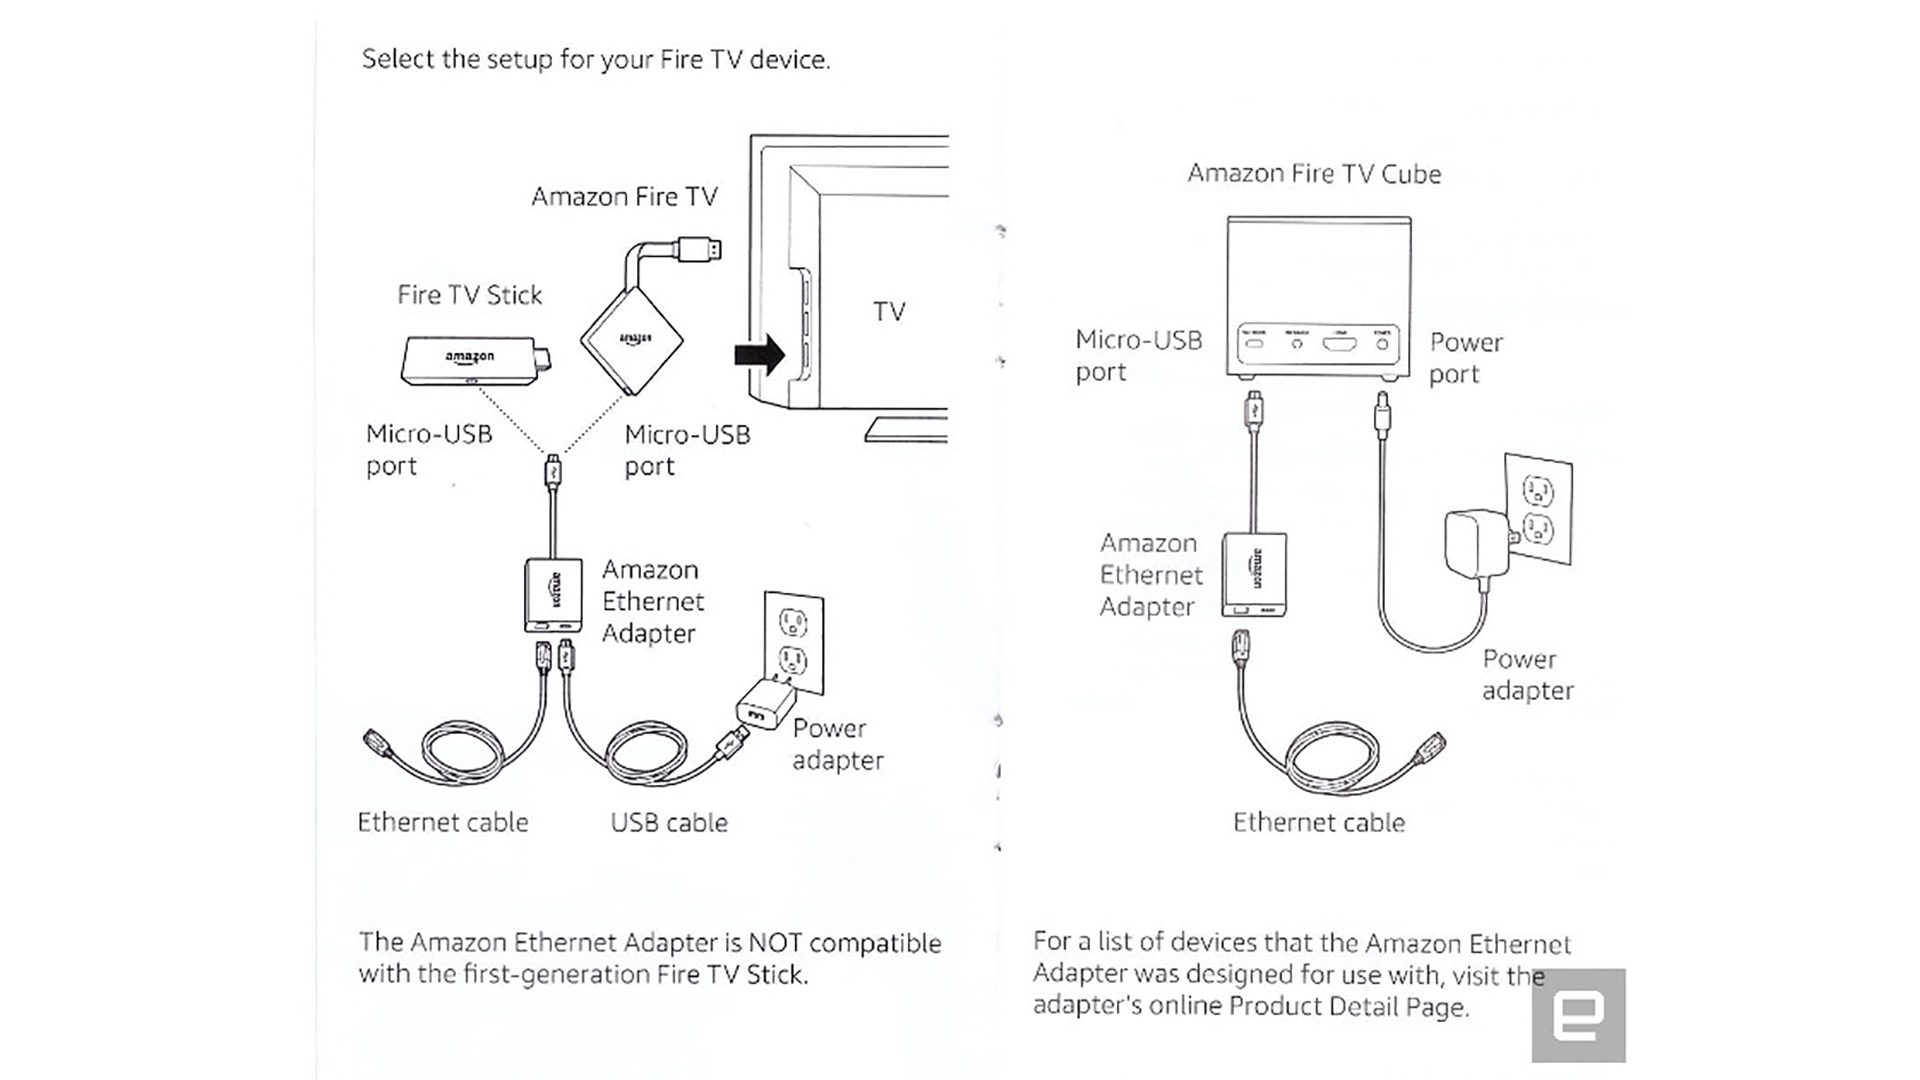 Kindle Fire Wiring Diagram Blog About Diagrams Usb Hd Micro Image Free Amazon